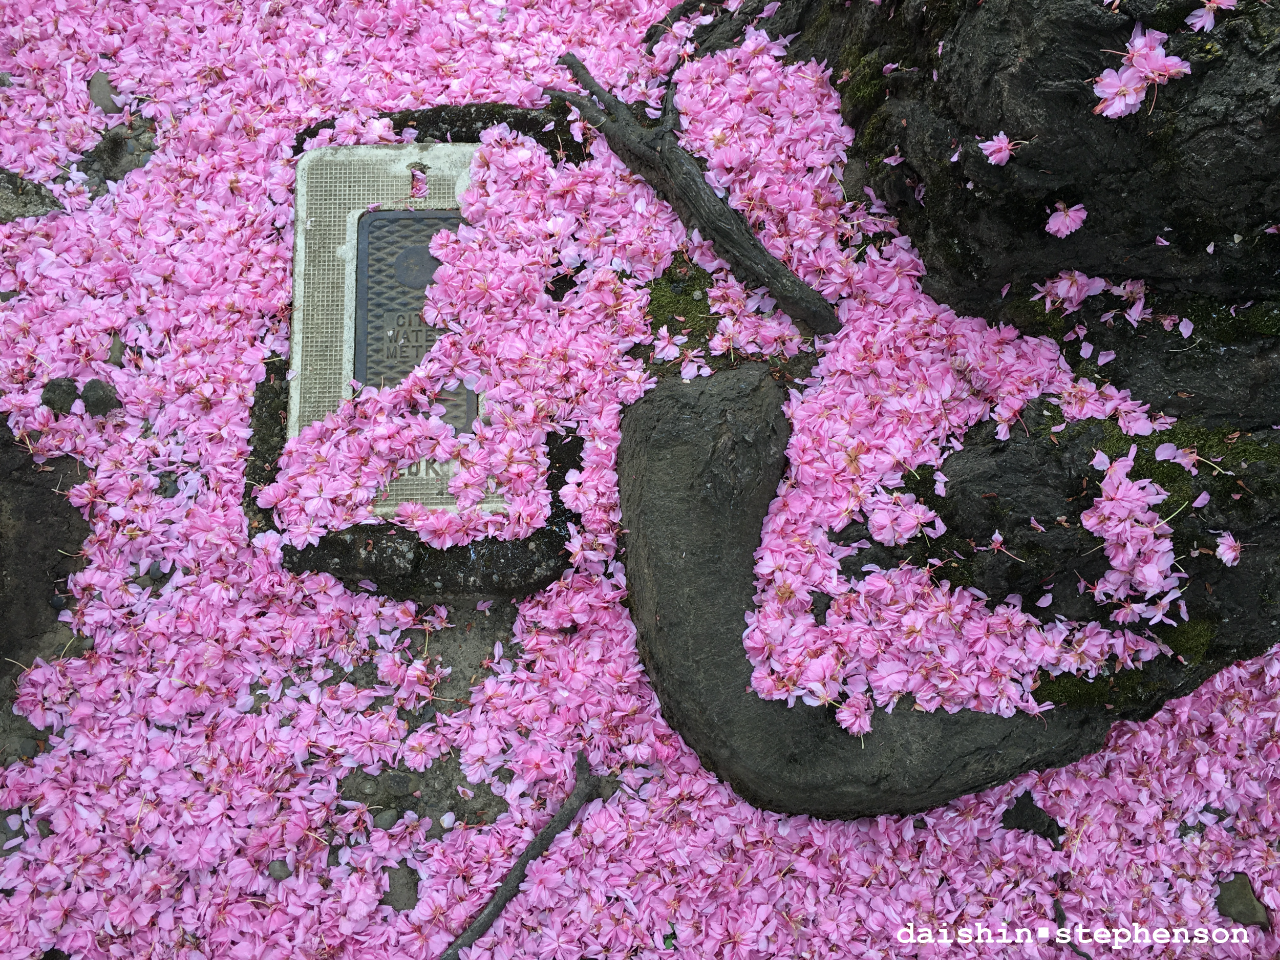 sidewalk covered with fallen cherry blossoms